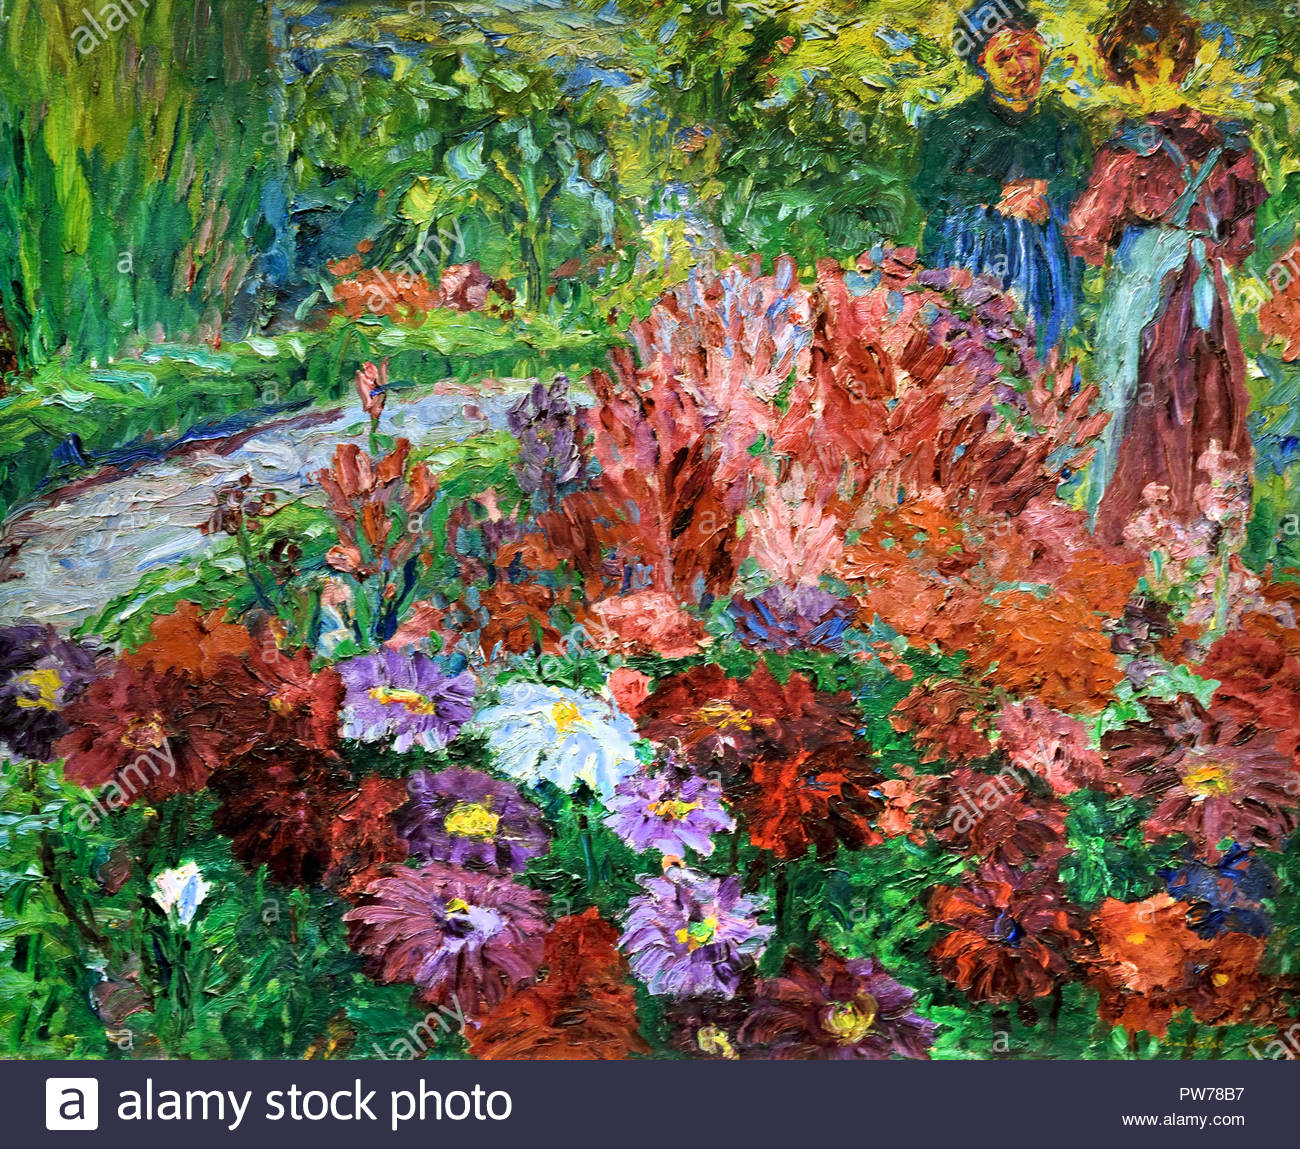 Flower Garden 1908 by Emil Nolde Danish Painter Denmark - Stock Image